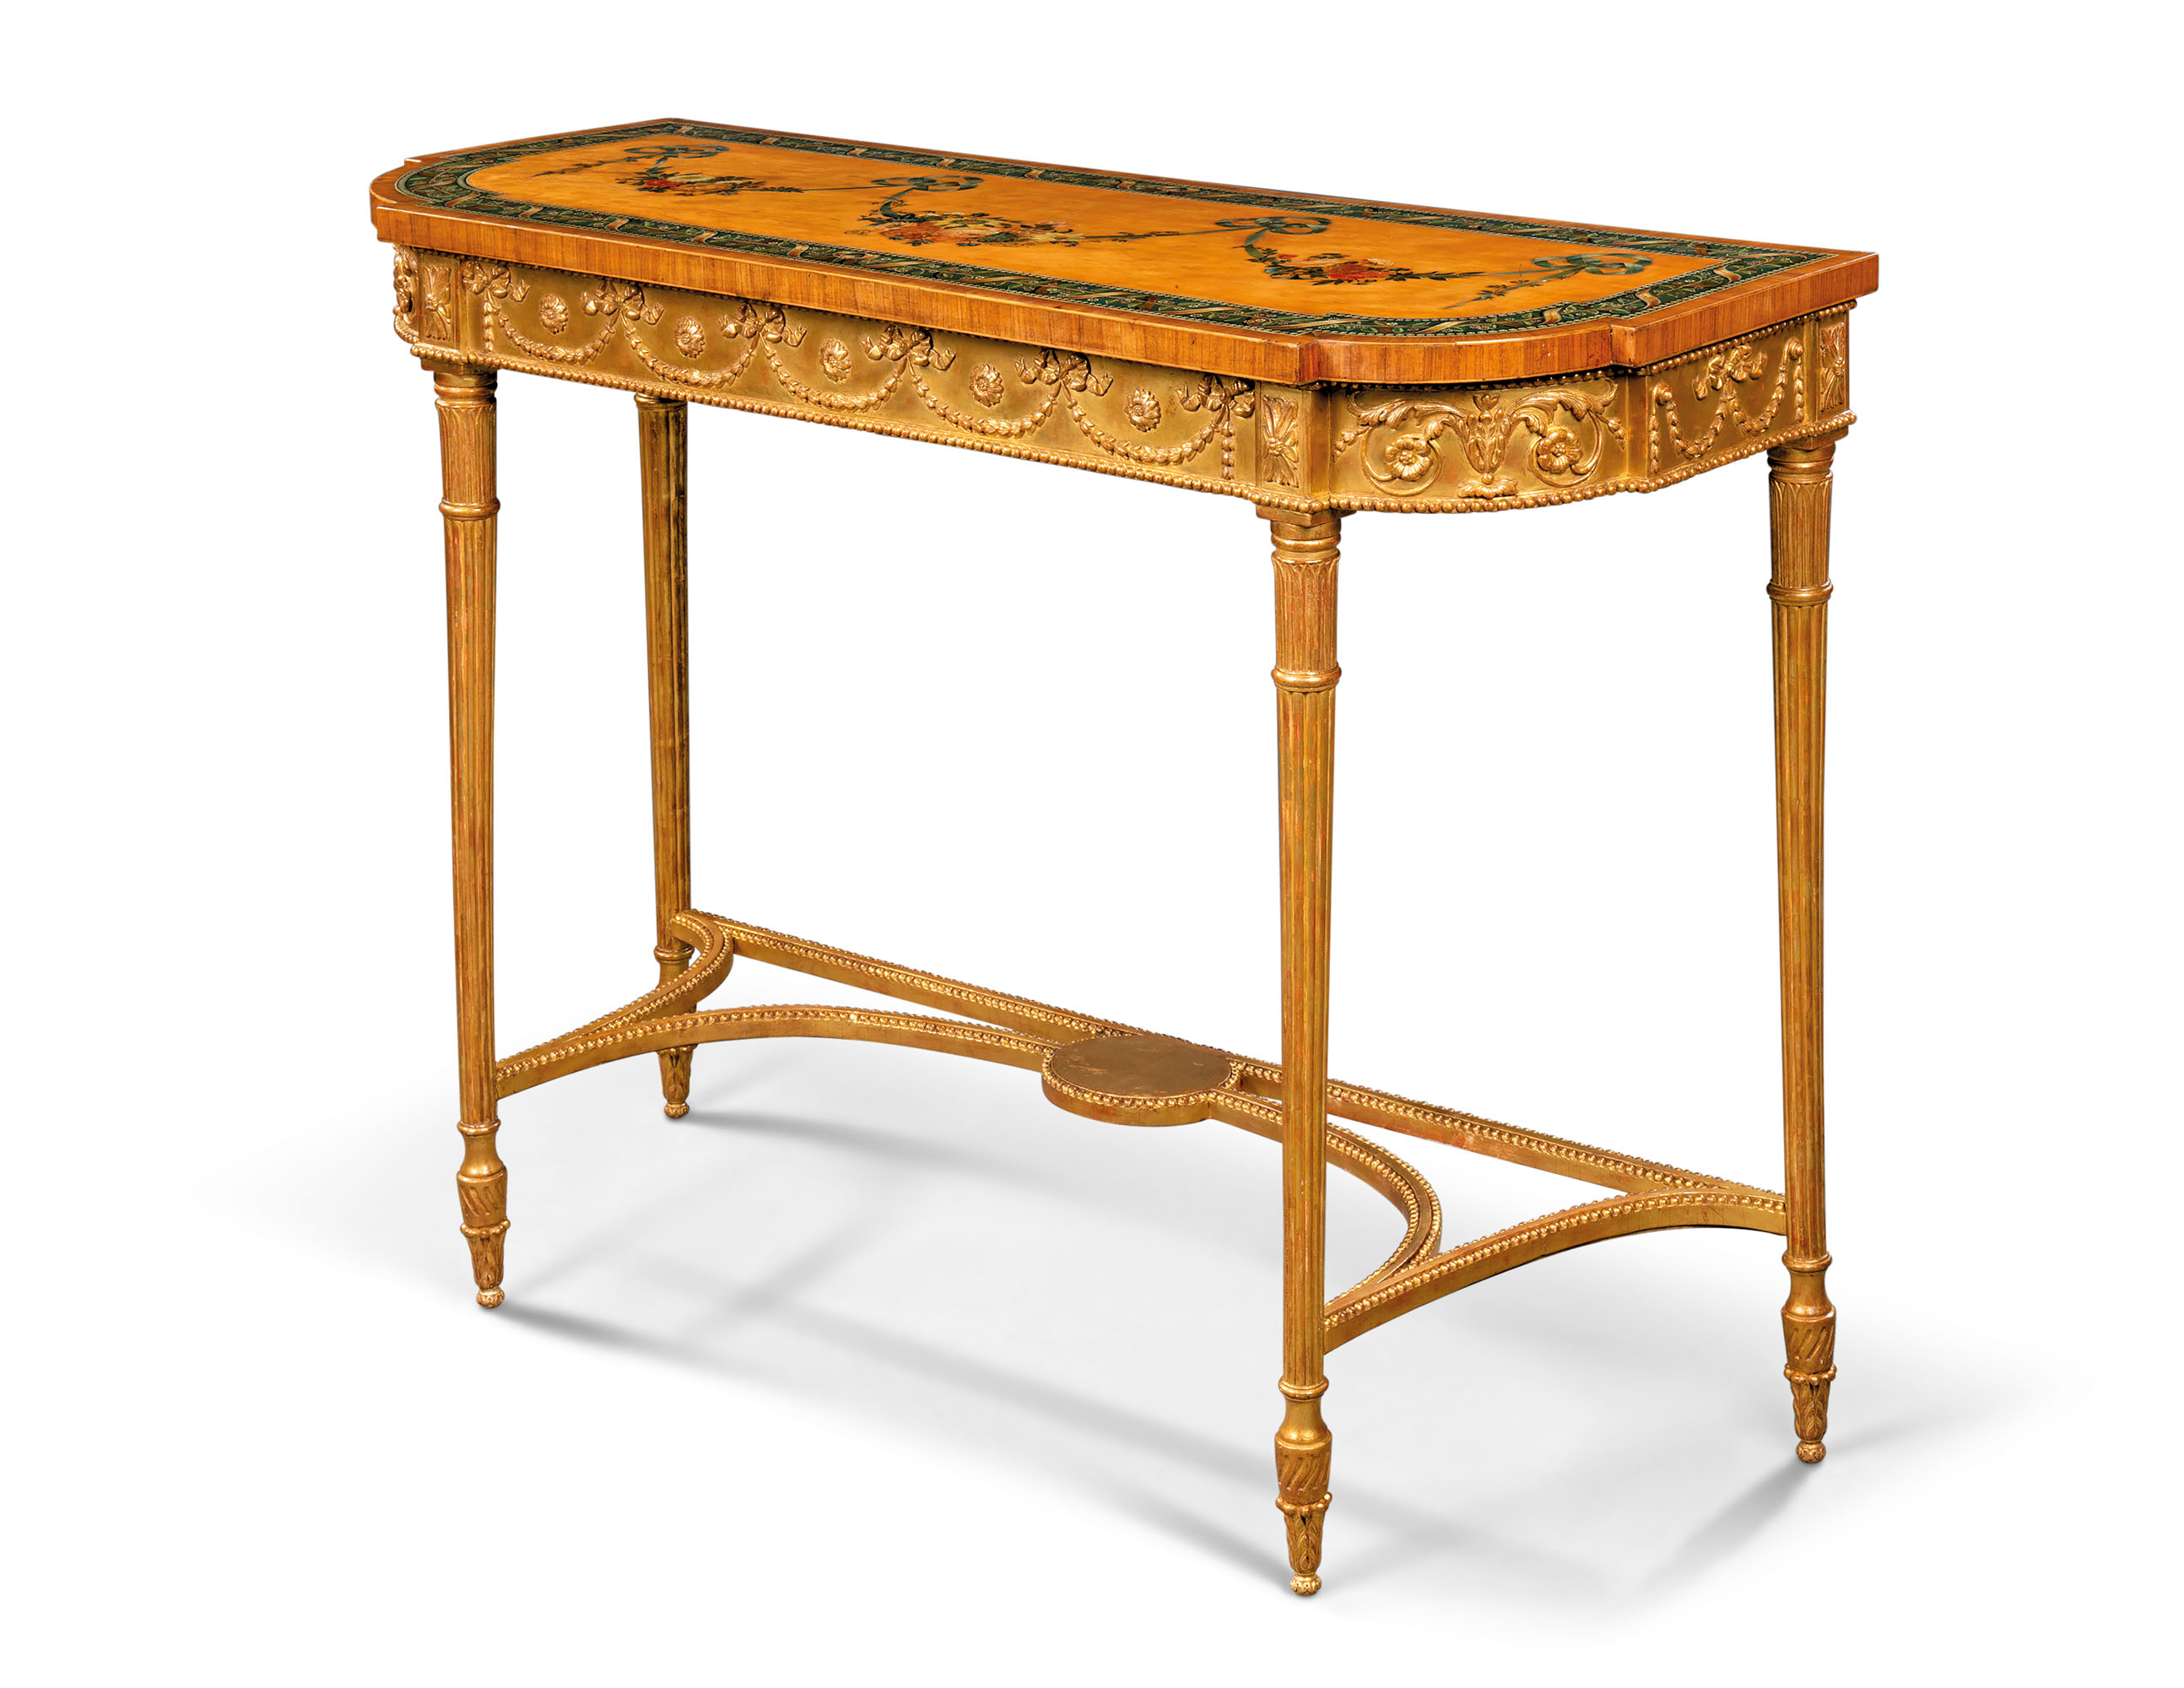 A GEORGE III POLYCHROME-PAINTED, SATINWOOD, TULIPWOOD-CROSSBANDED AND PARCEL-GILT SIDE TABLE